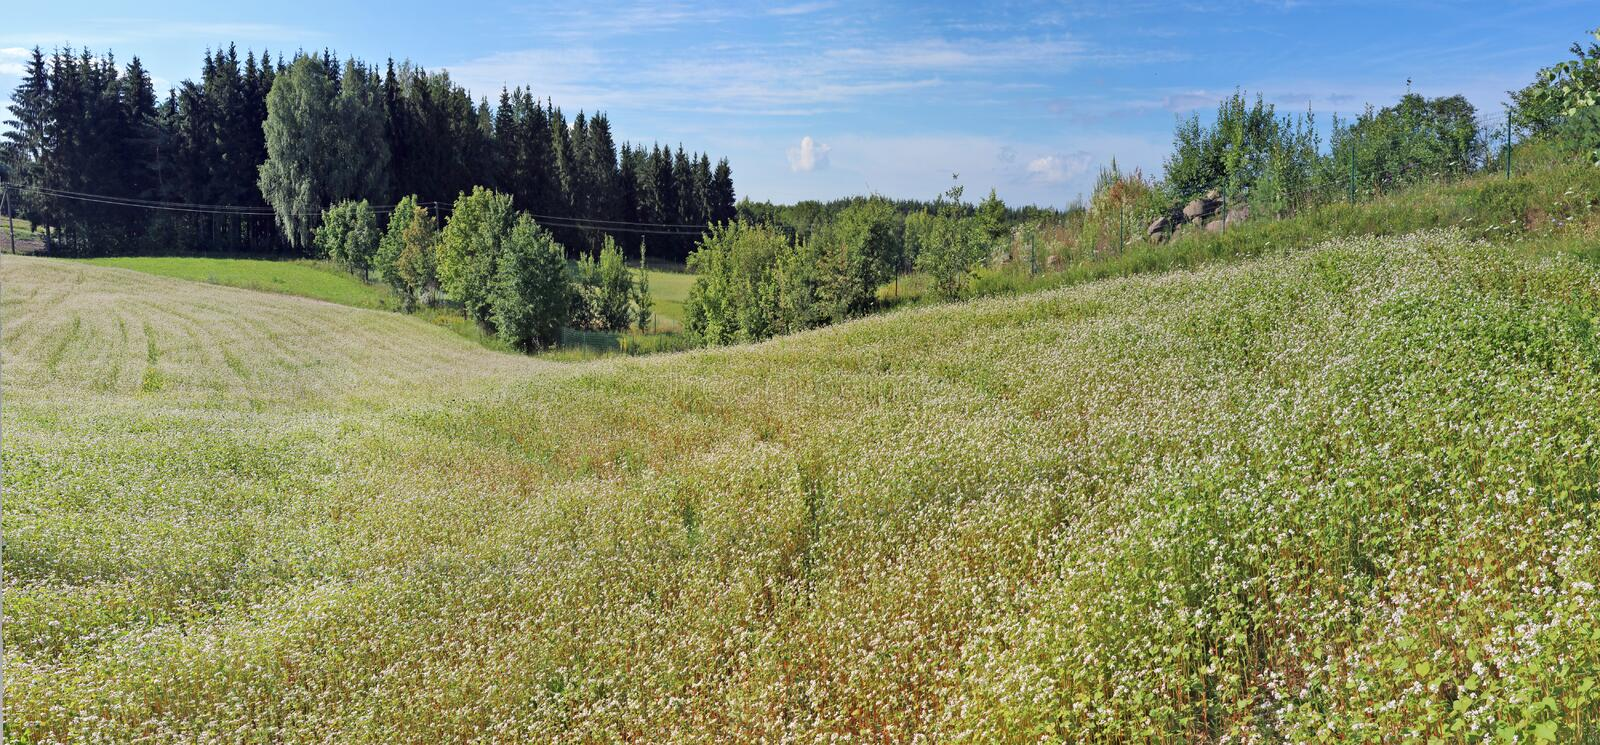 Summer hillsd of blossoming buckwheat agricultural plants. stock photos